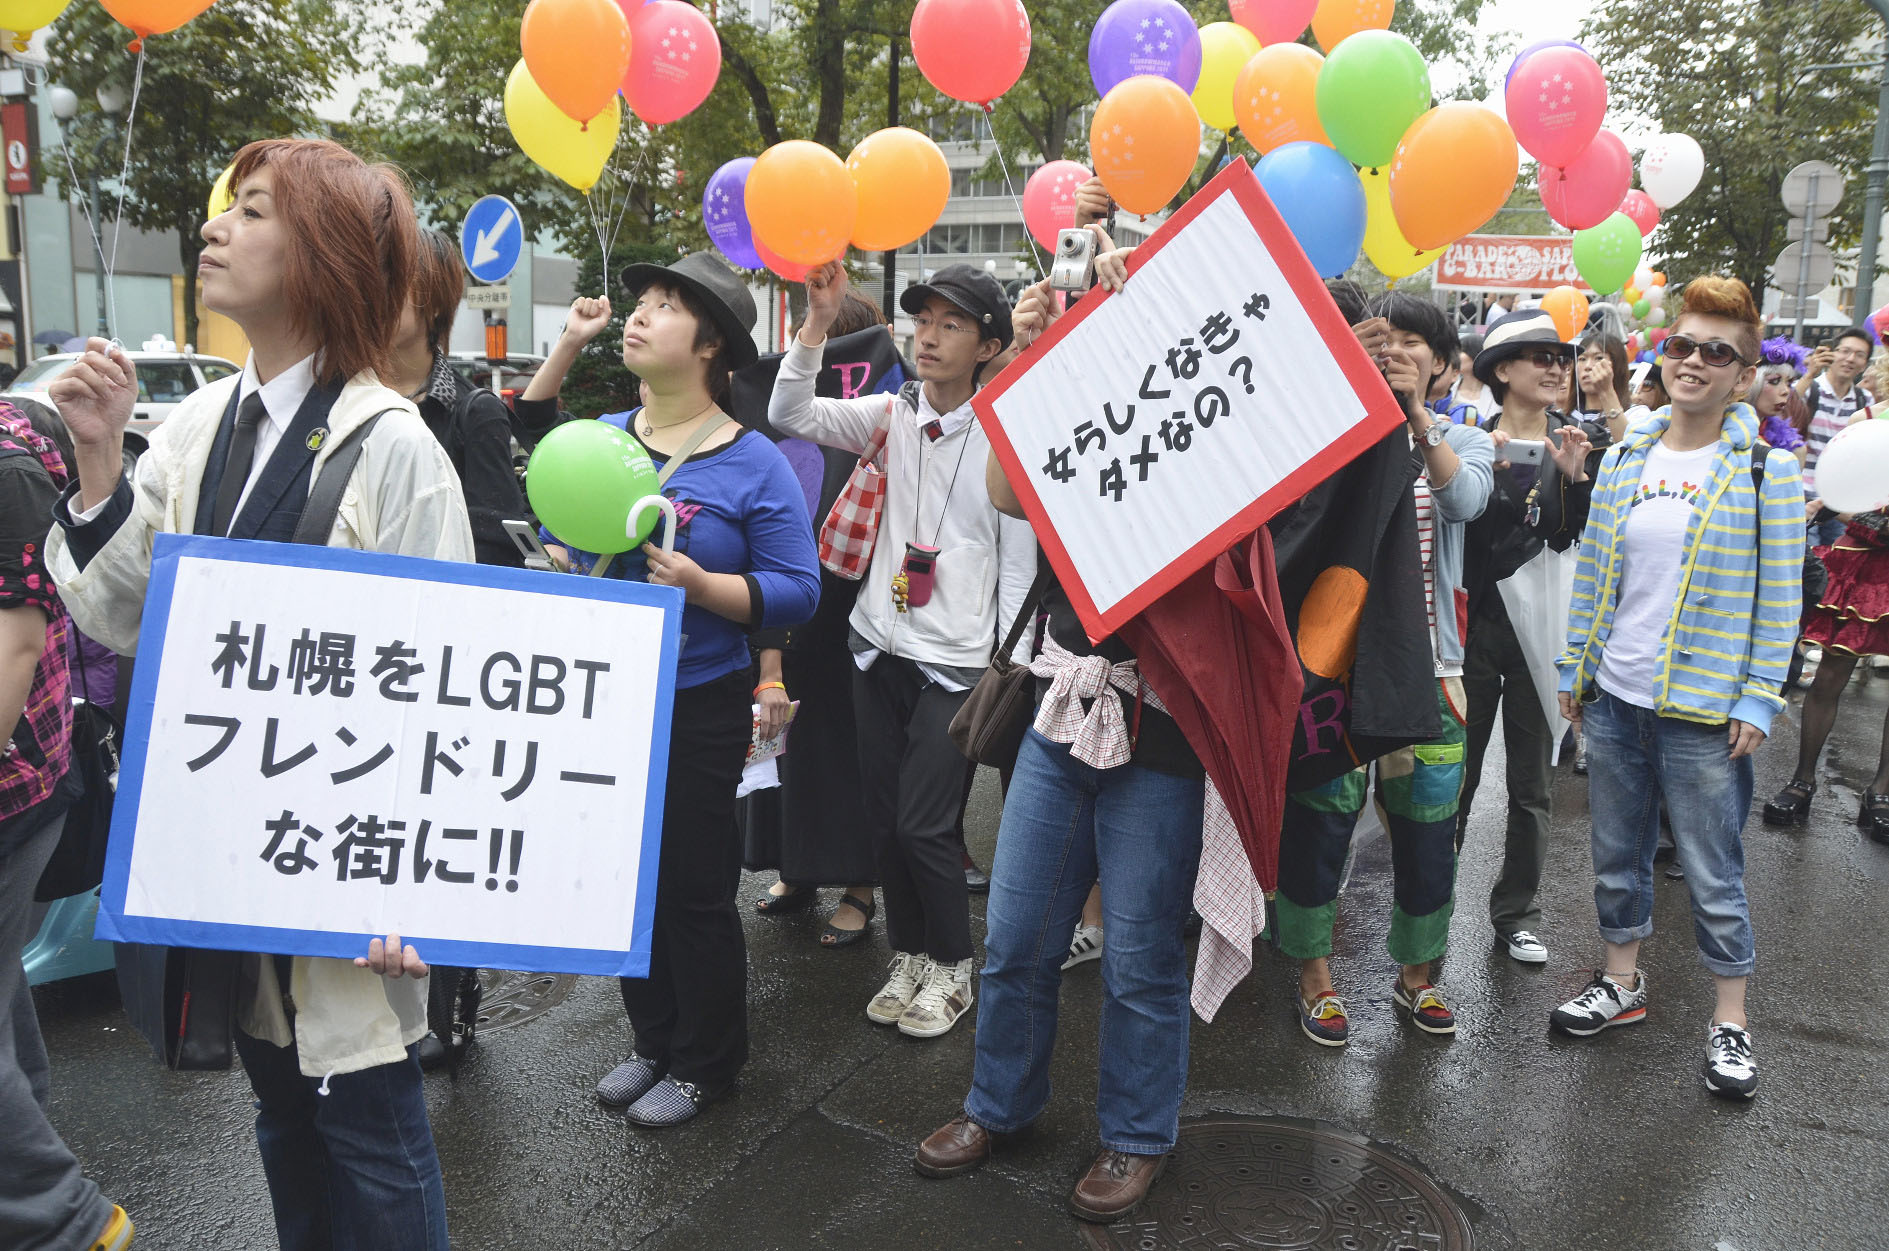 Media's gender roles push LGBT groups into corners